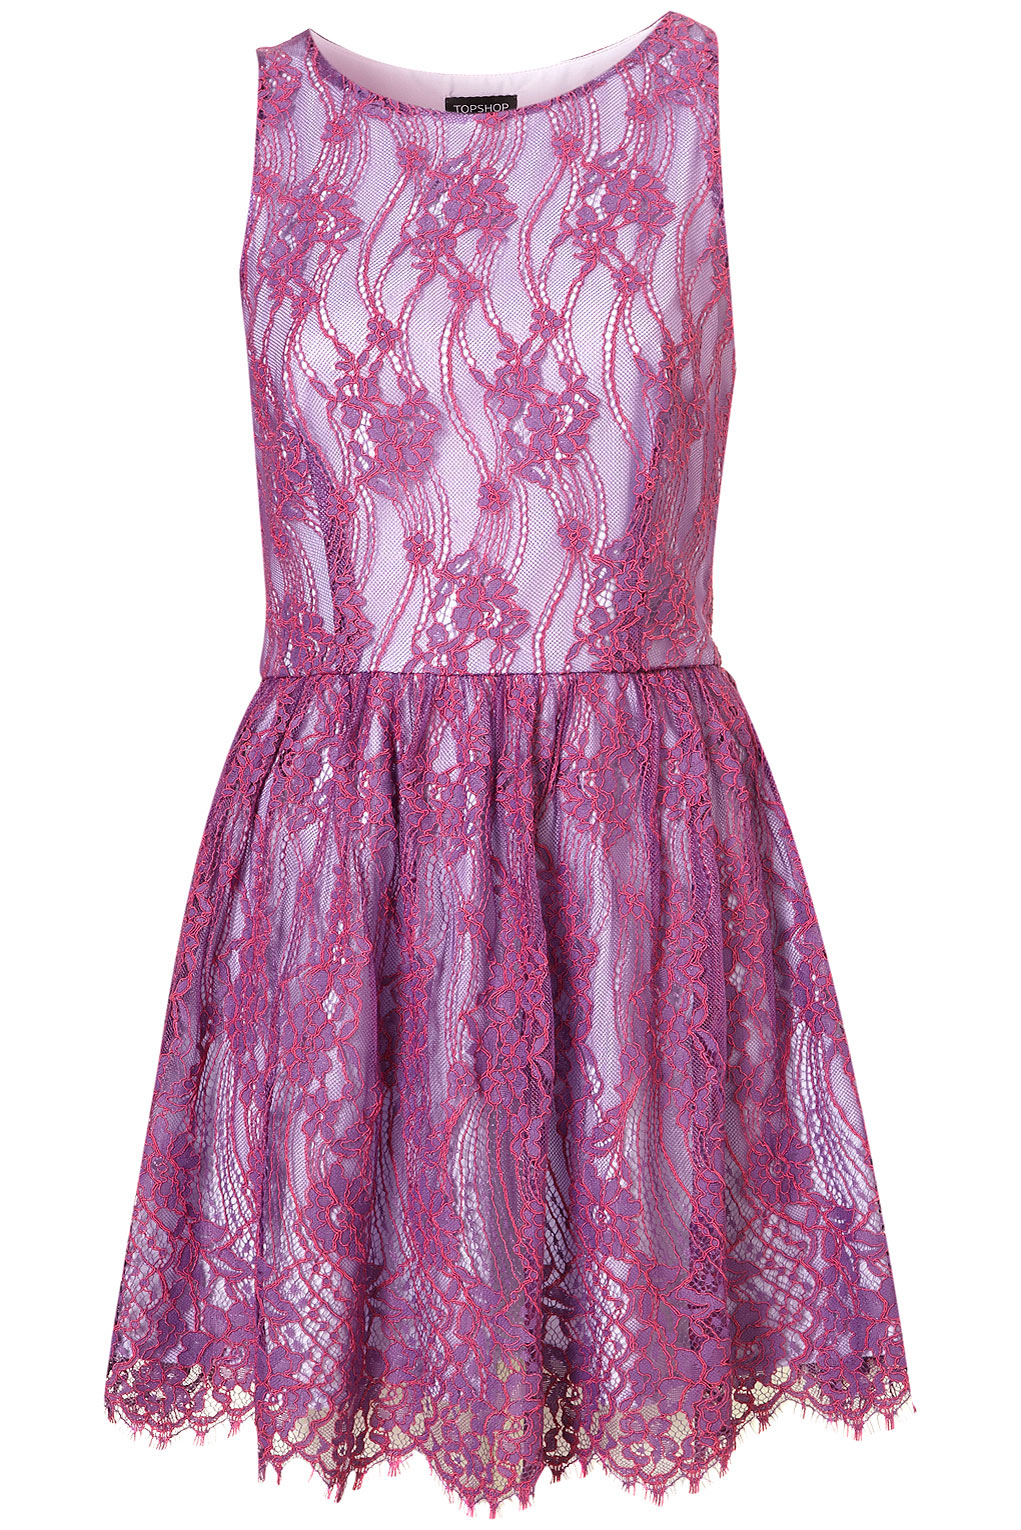 Topshop Lace Skater Dress In Purple Lyst